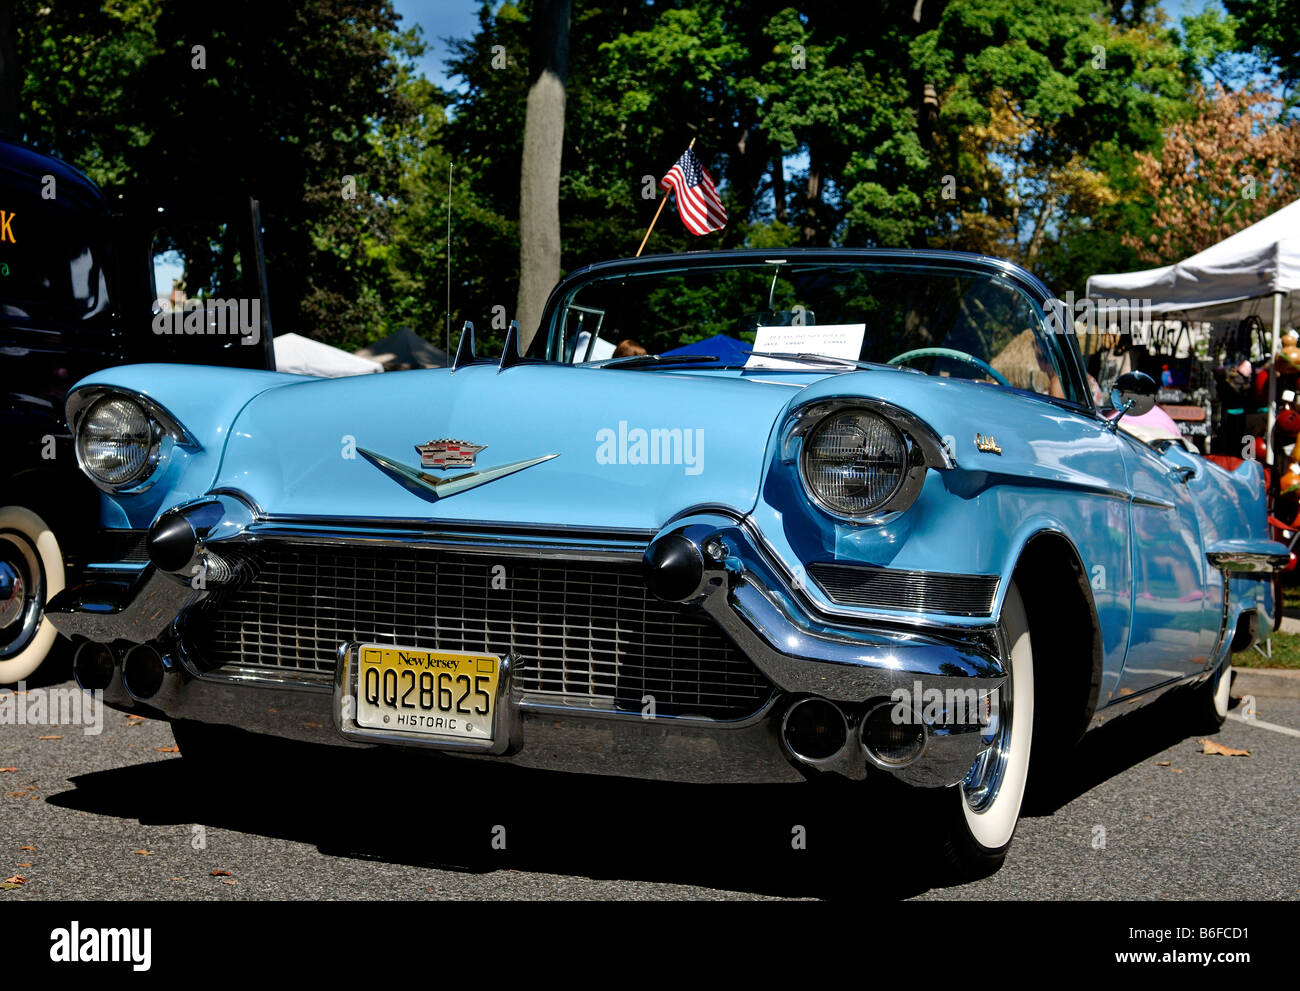 Car Show America Stock Photos Car Show America Stock Images Alamy - Car show usa